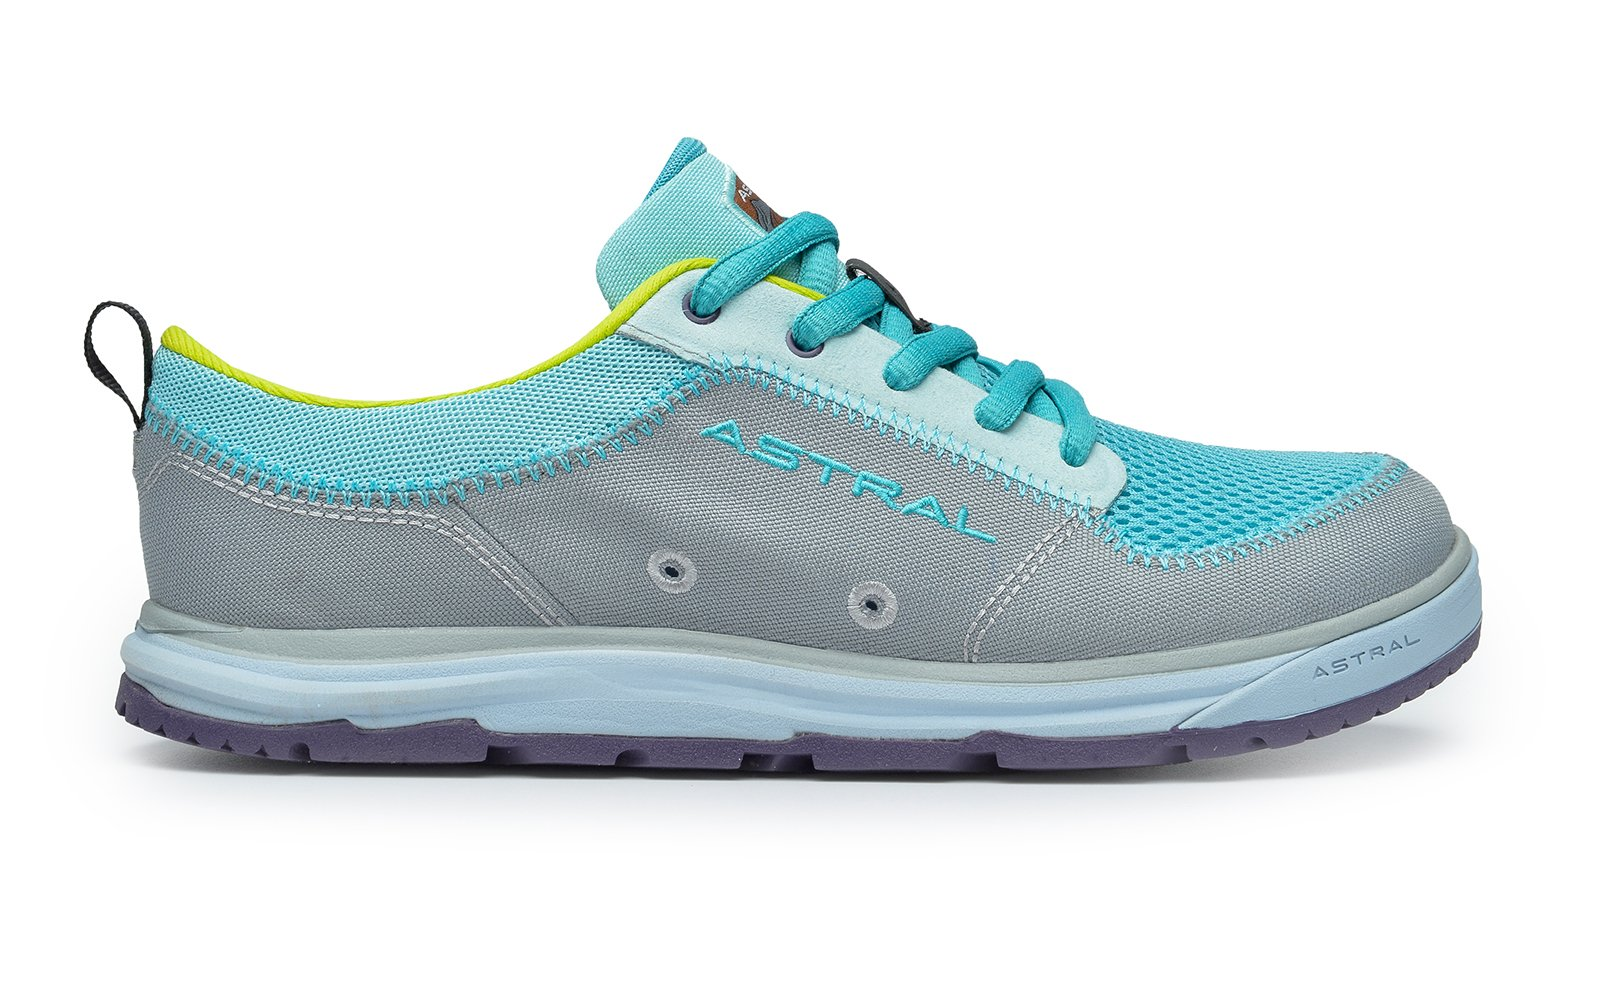 Astral Brewess 2.0 Women's Water Shoe - Turquoise/Gray - 8